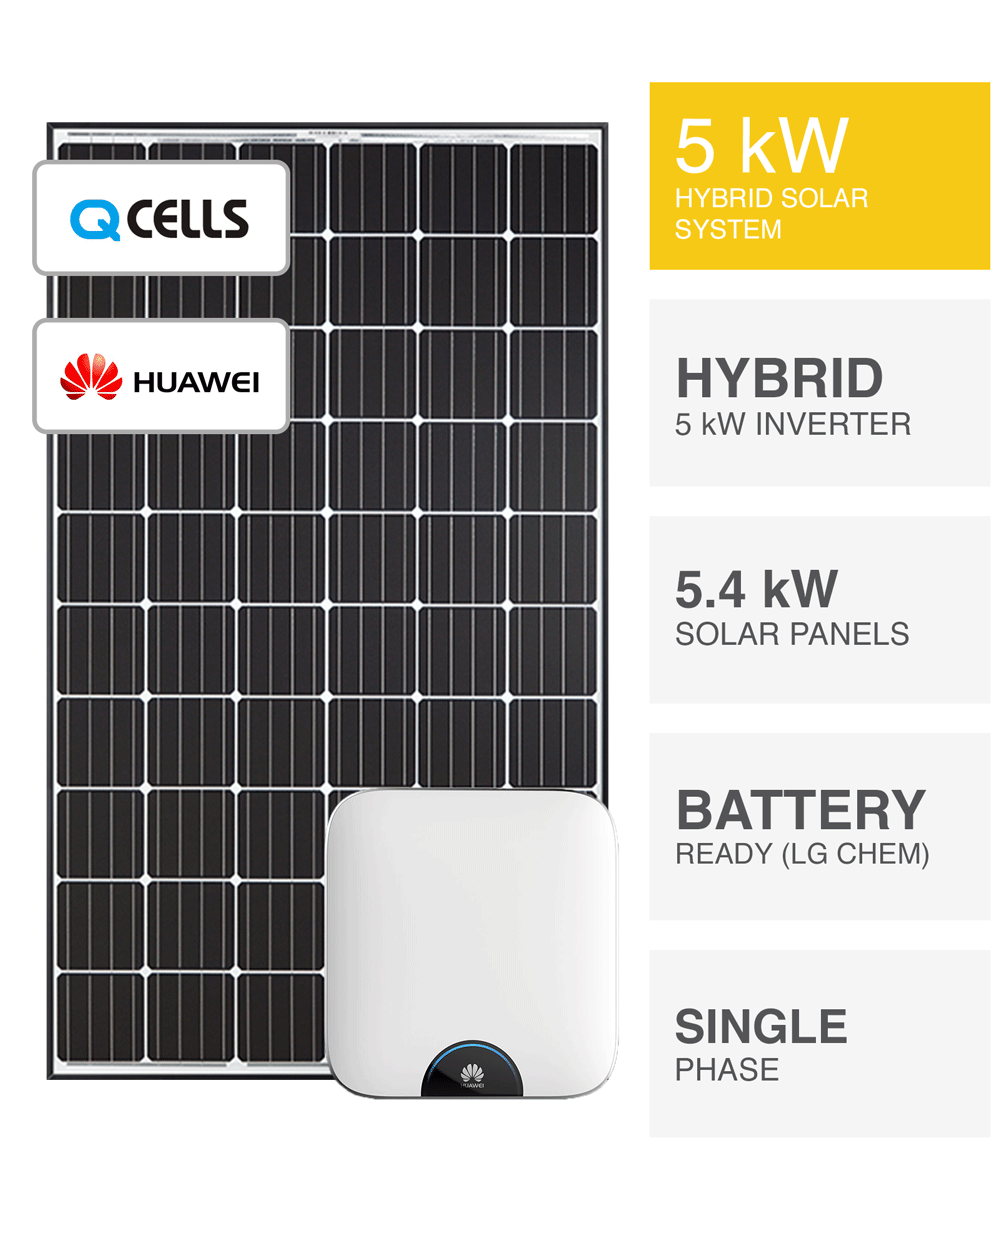 5kw Hybrid Solar System Battery Ready Save More